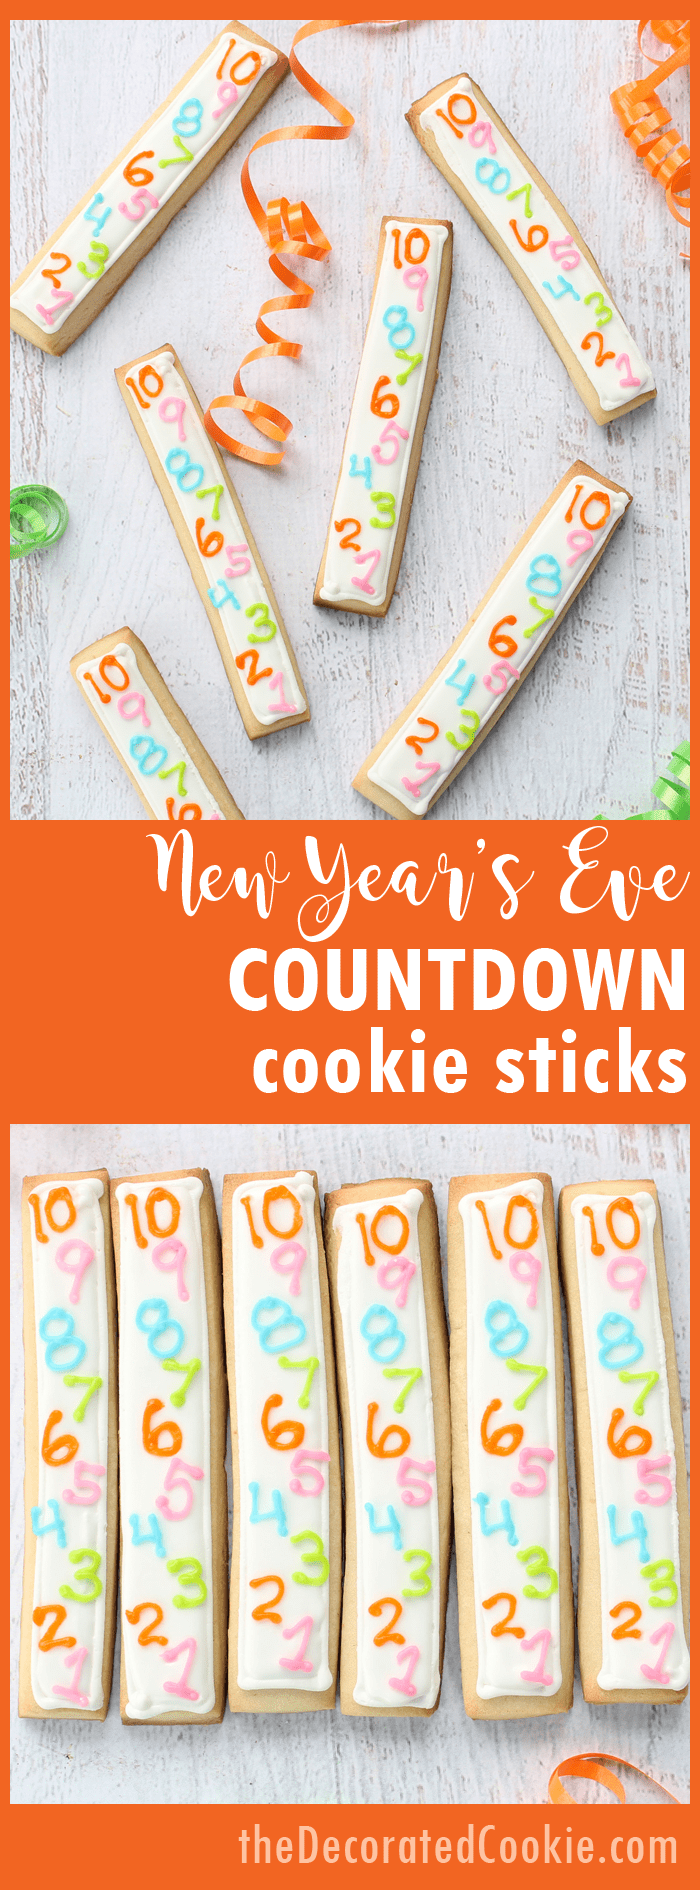 New Year's Eve countdown cookie sticks! Fun food ideas for your New Year's Eve party.